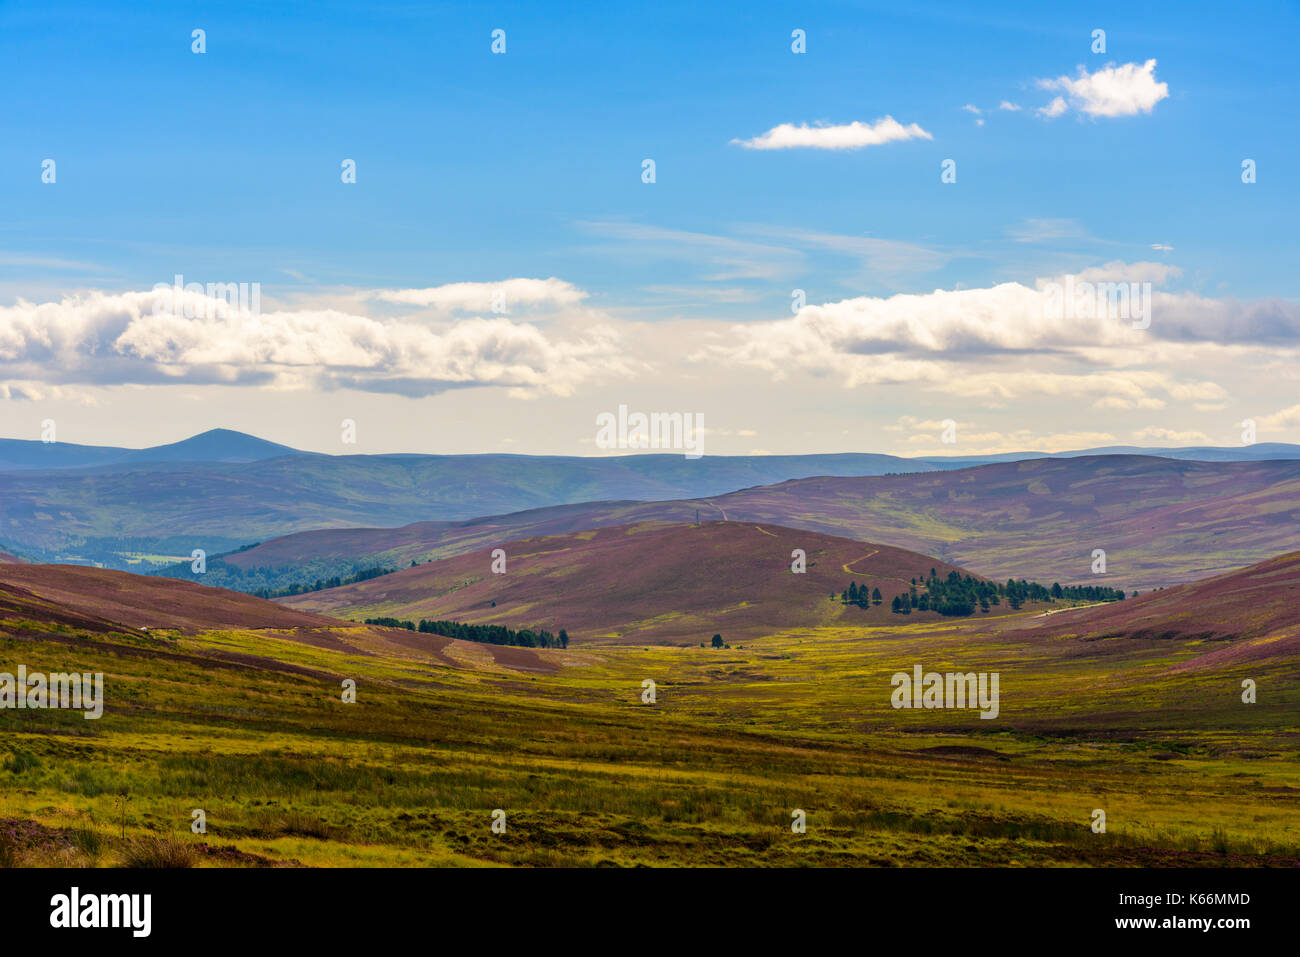 Scenic view of the beautiful nature of Cairngorms National Park in Scotland in summer - Stock Image